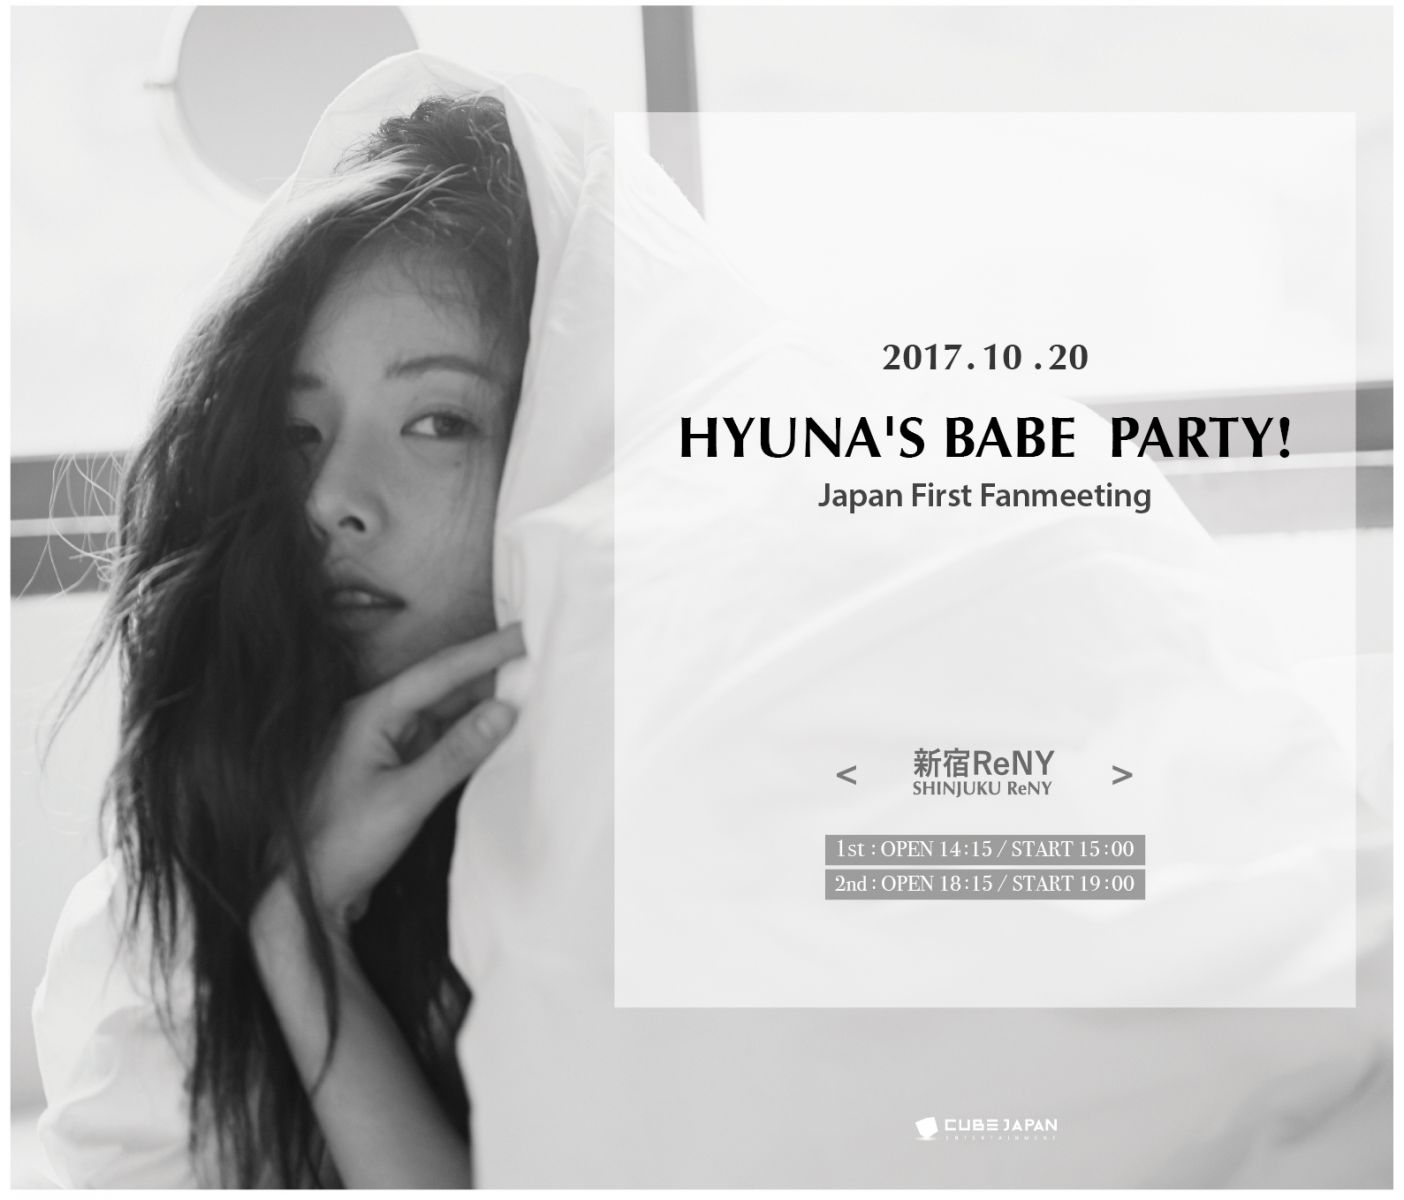 10/20(金) HYUNA'S BABE PARTY! Japan First Fanmeeting